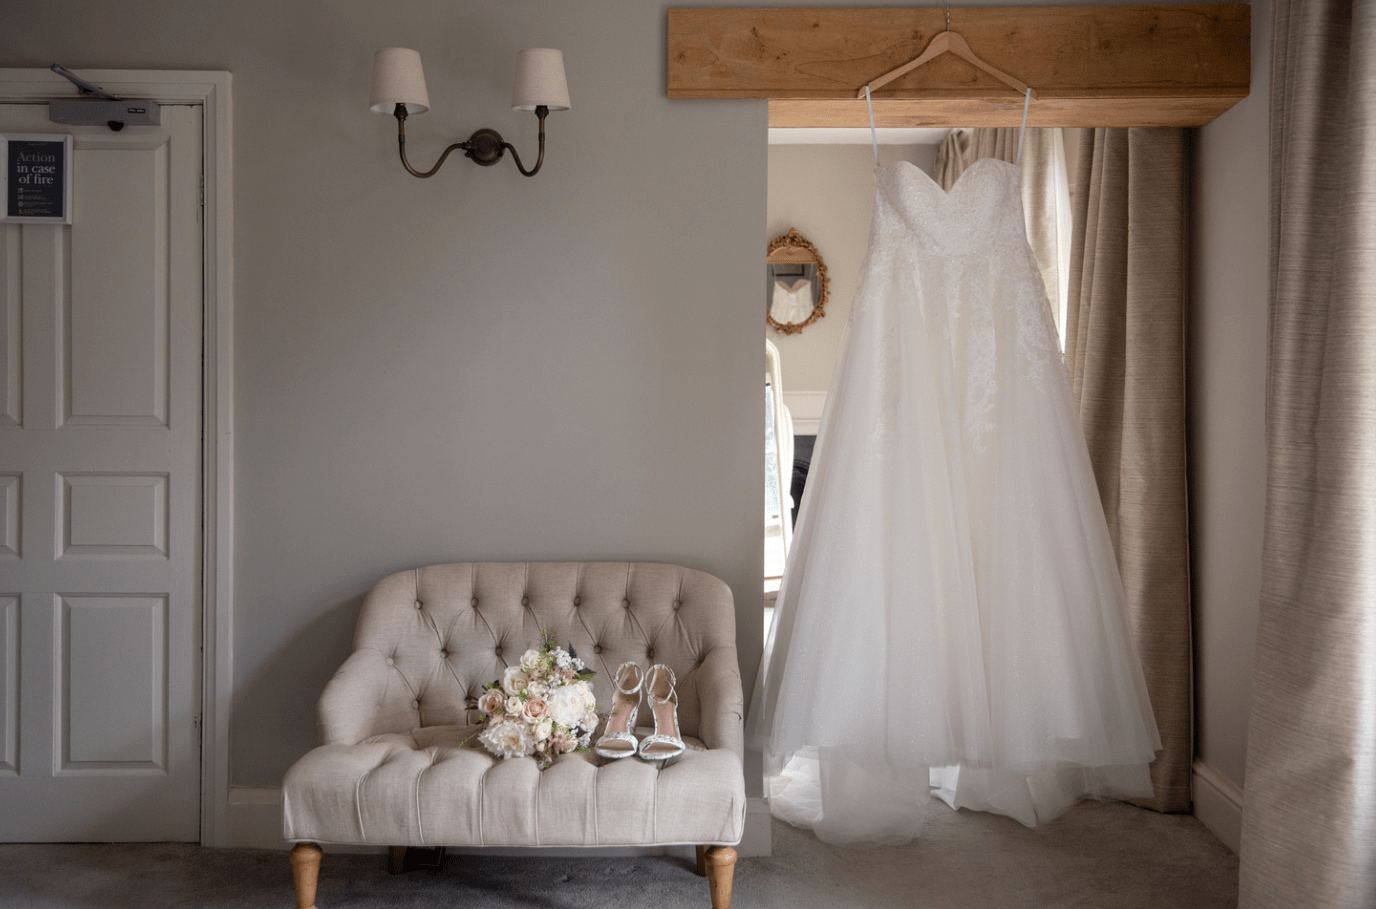 Wedding dress hanging on a door frame next to shoes and bouquet